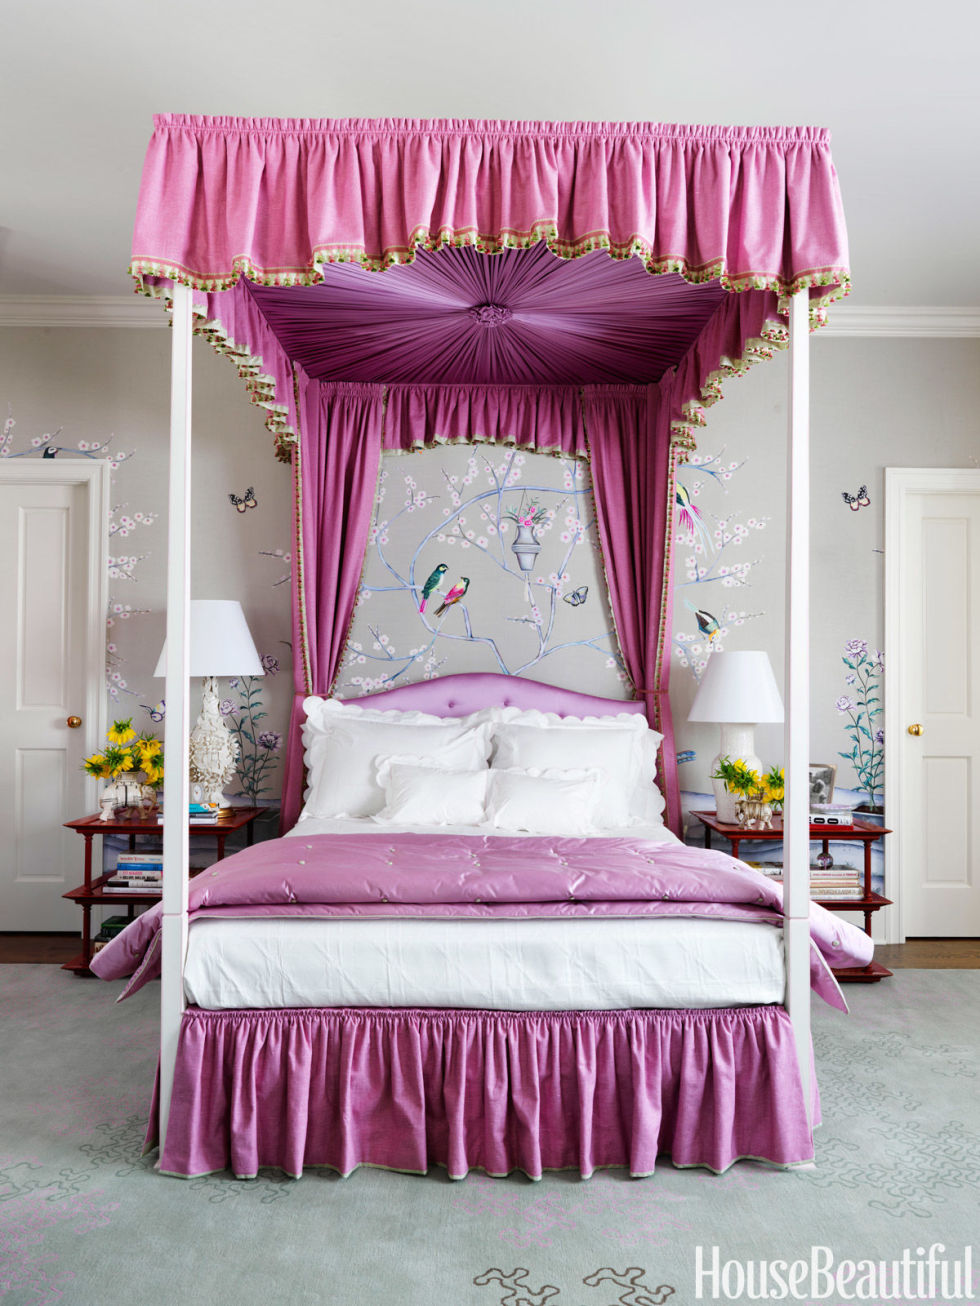 Pink bedroom curtain design - Pink Bedroom Curtain Design 28